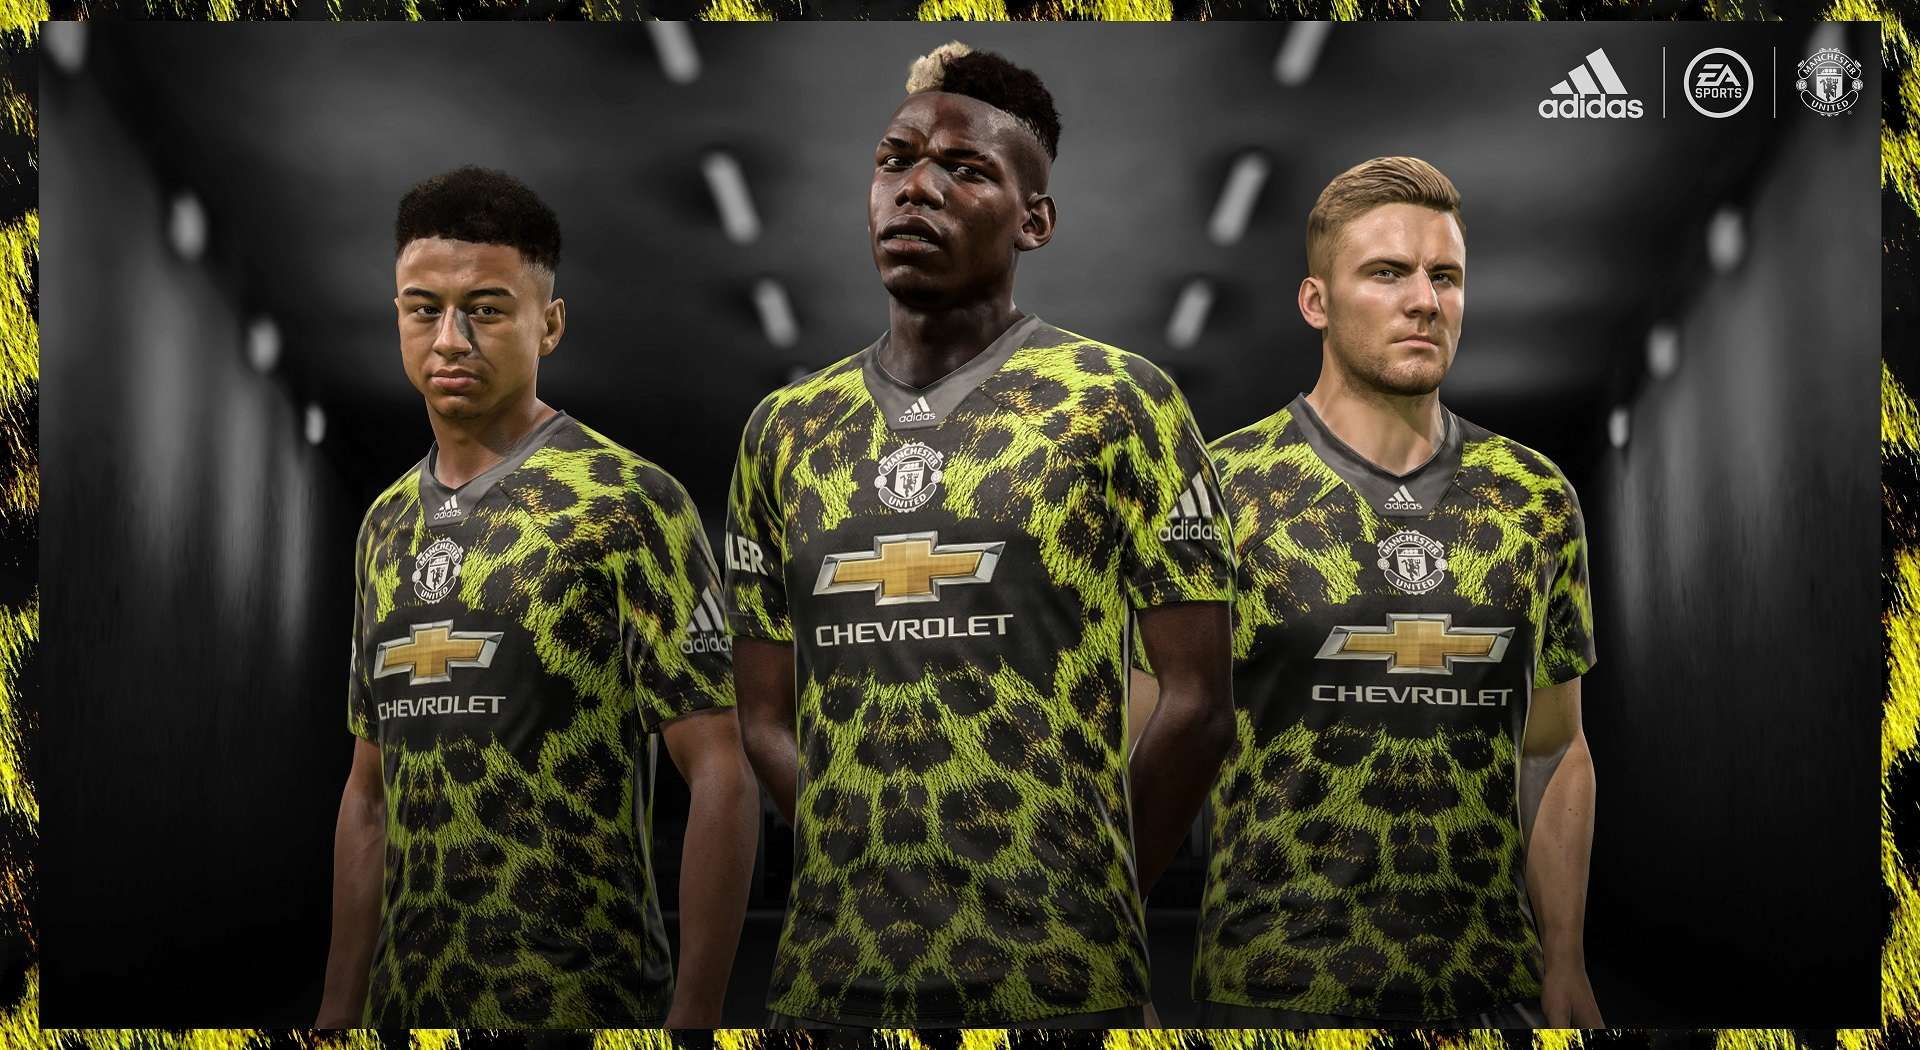 FIFA 19 EA Sports Jersey Manchester United